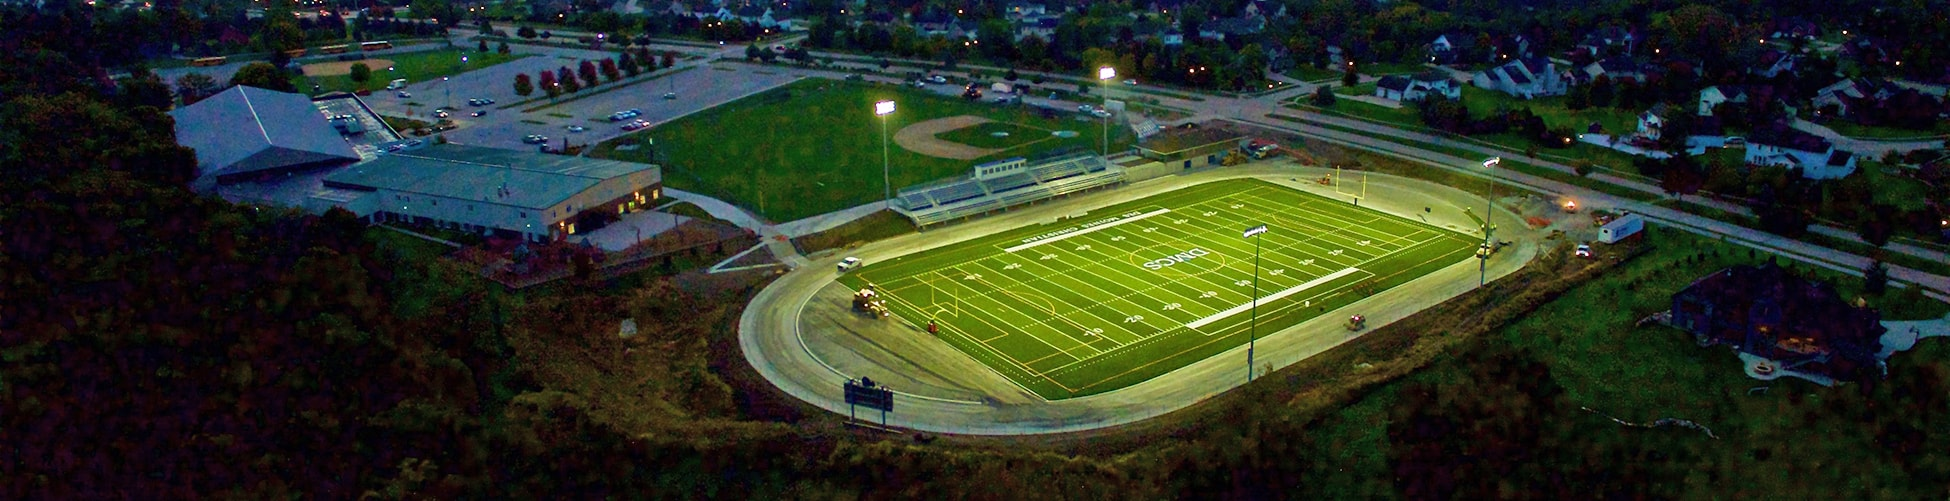 View of Lions Field at Des Moines Christian School at Night